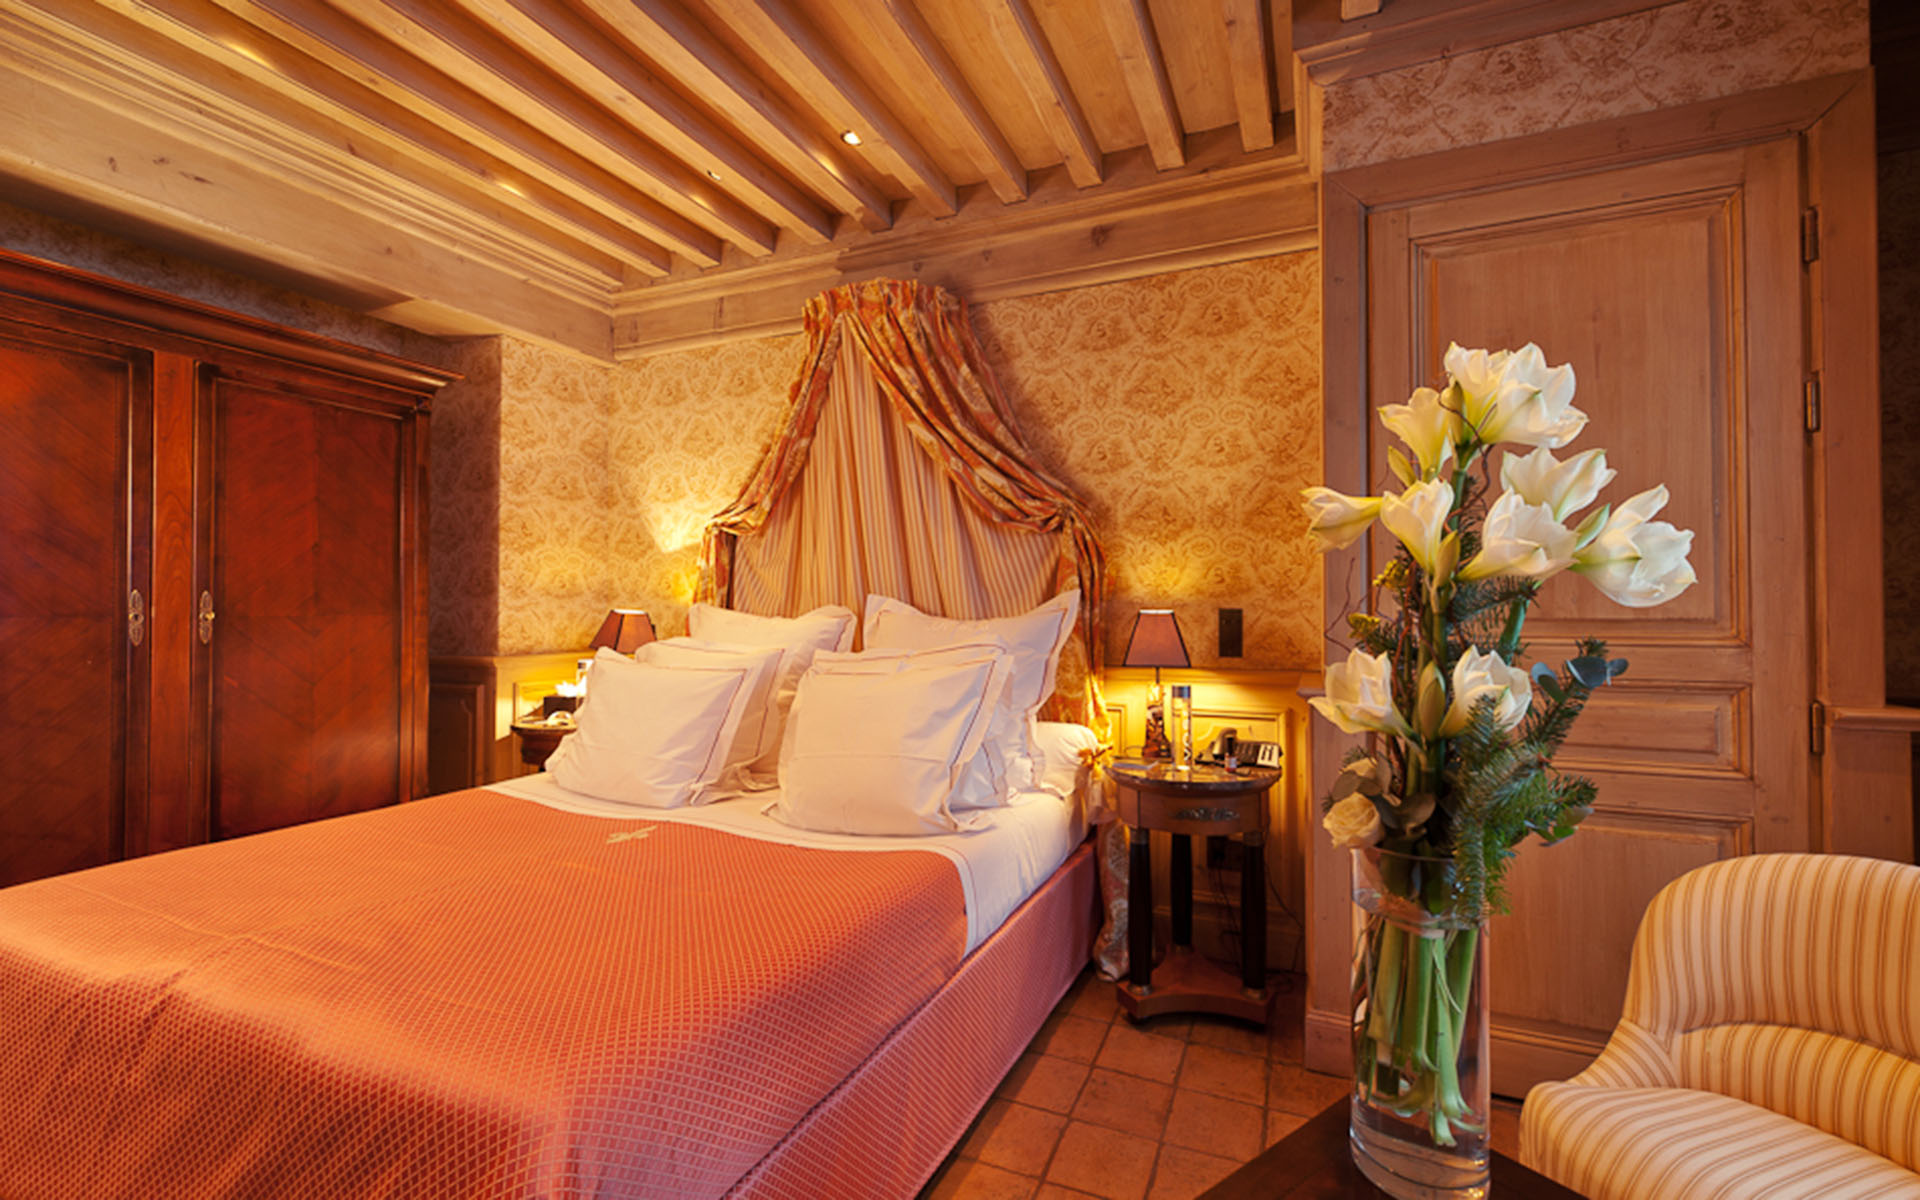 290/Hotel Saint Joseph/Chambre/Standards/Saint_joseph_courchevel_standard3.jpg